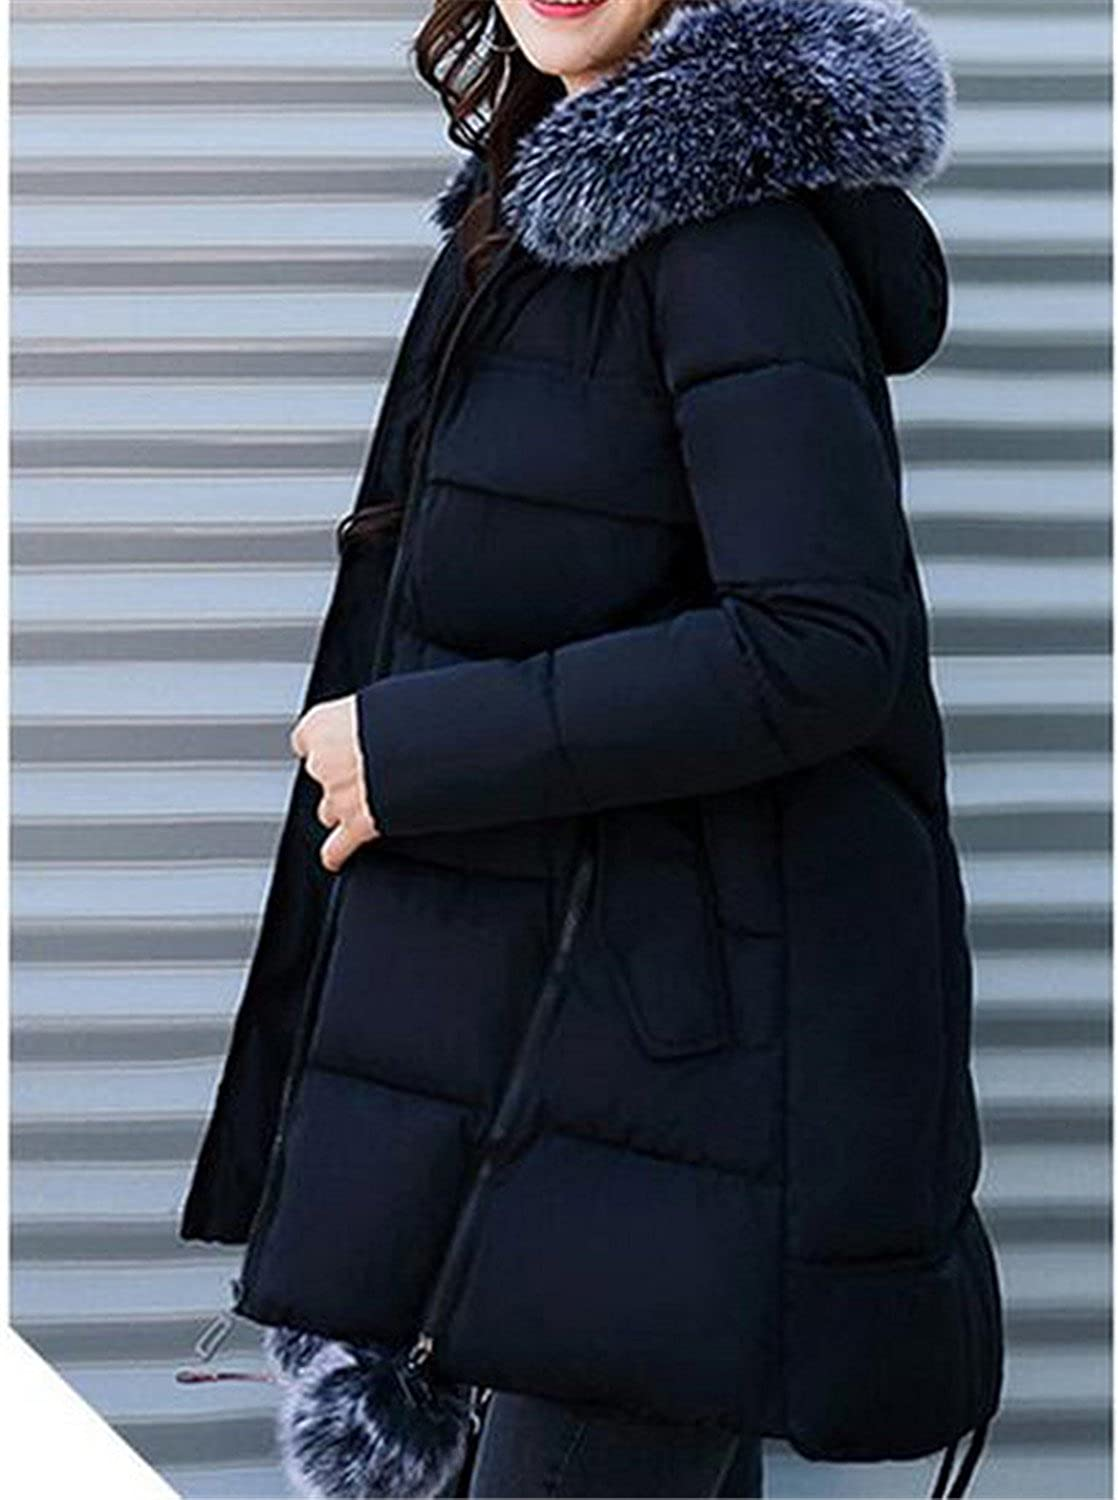 474d543f6fd Amazon.com  Cheryl Bull Trendy Long Cotton Jacket Women Coat Winter Thick  Coats Female Outerwear Women Parka Plus Size 3XL Coats  Clothing